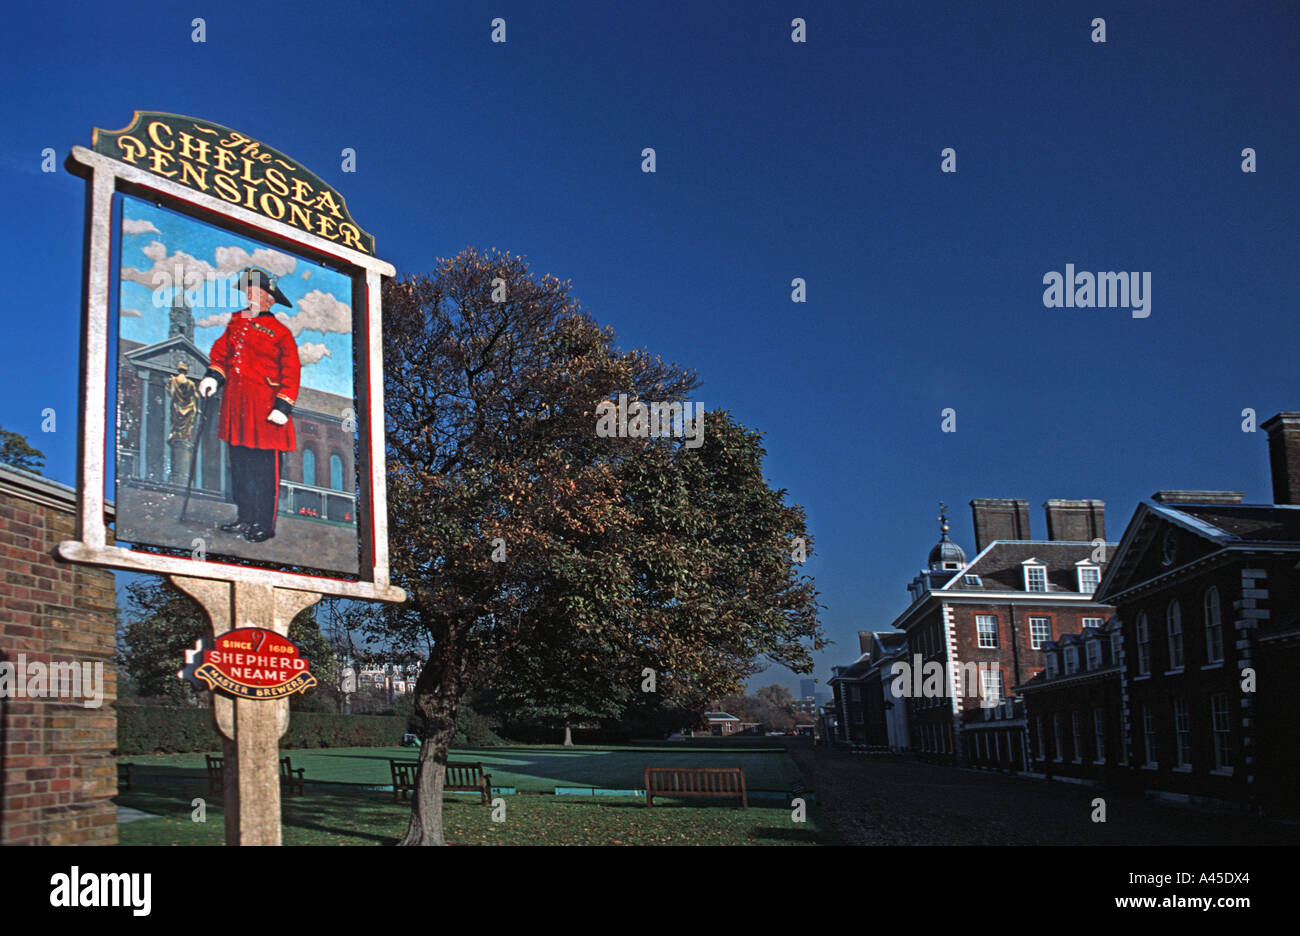 The Chelsea Pensioner A pub sign in the Royal Hospital grounds Chelsea London England United Kingdom - Stock Image